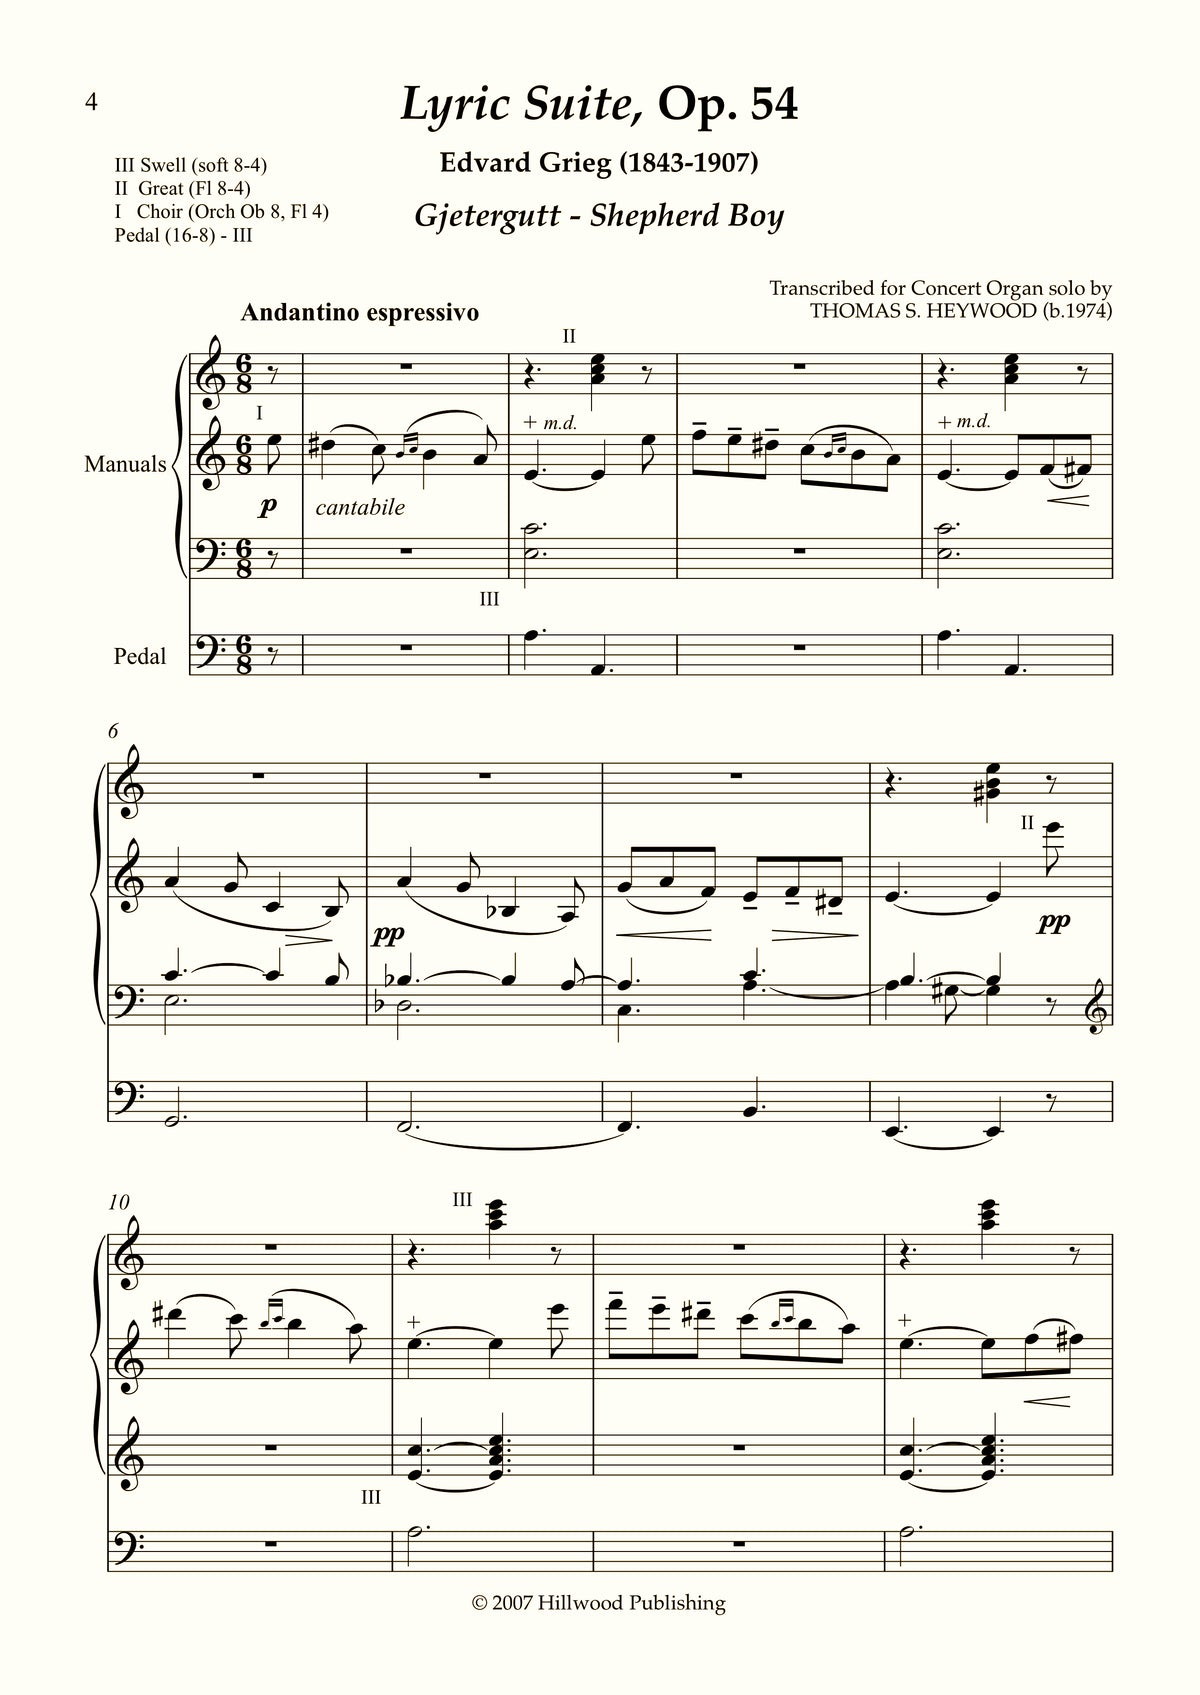 Grieg/Heywood - Shepherd Boy from the Lyric Suite, Op. 54 (Score)